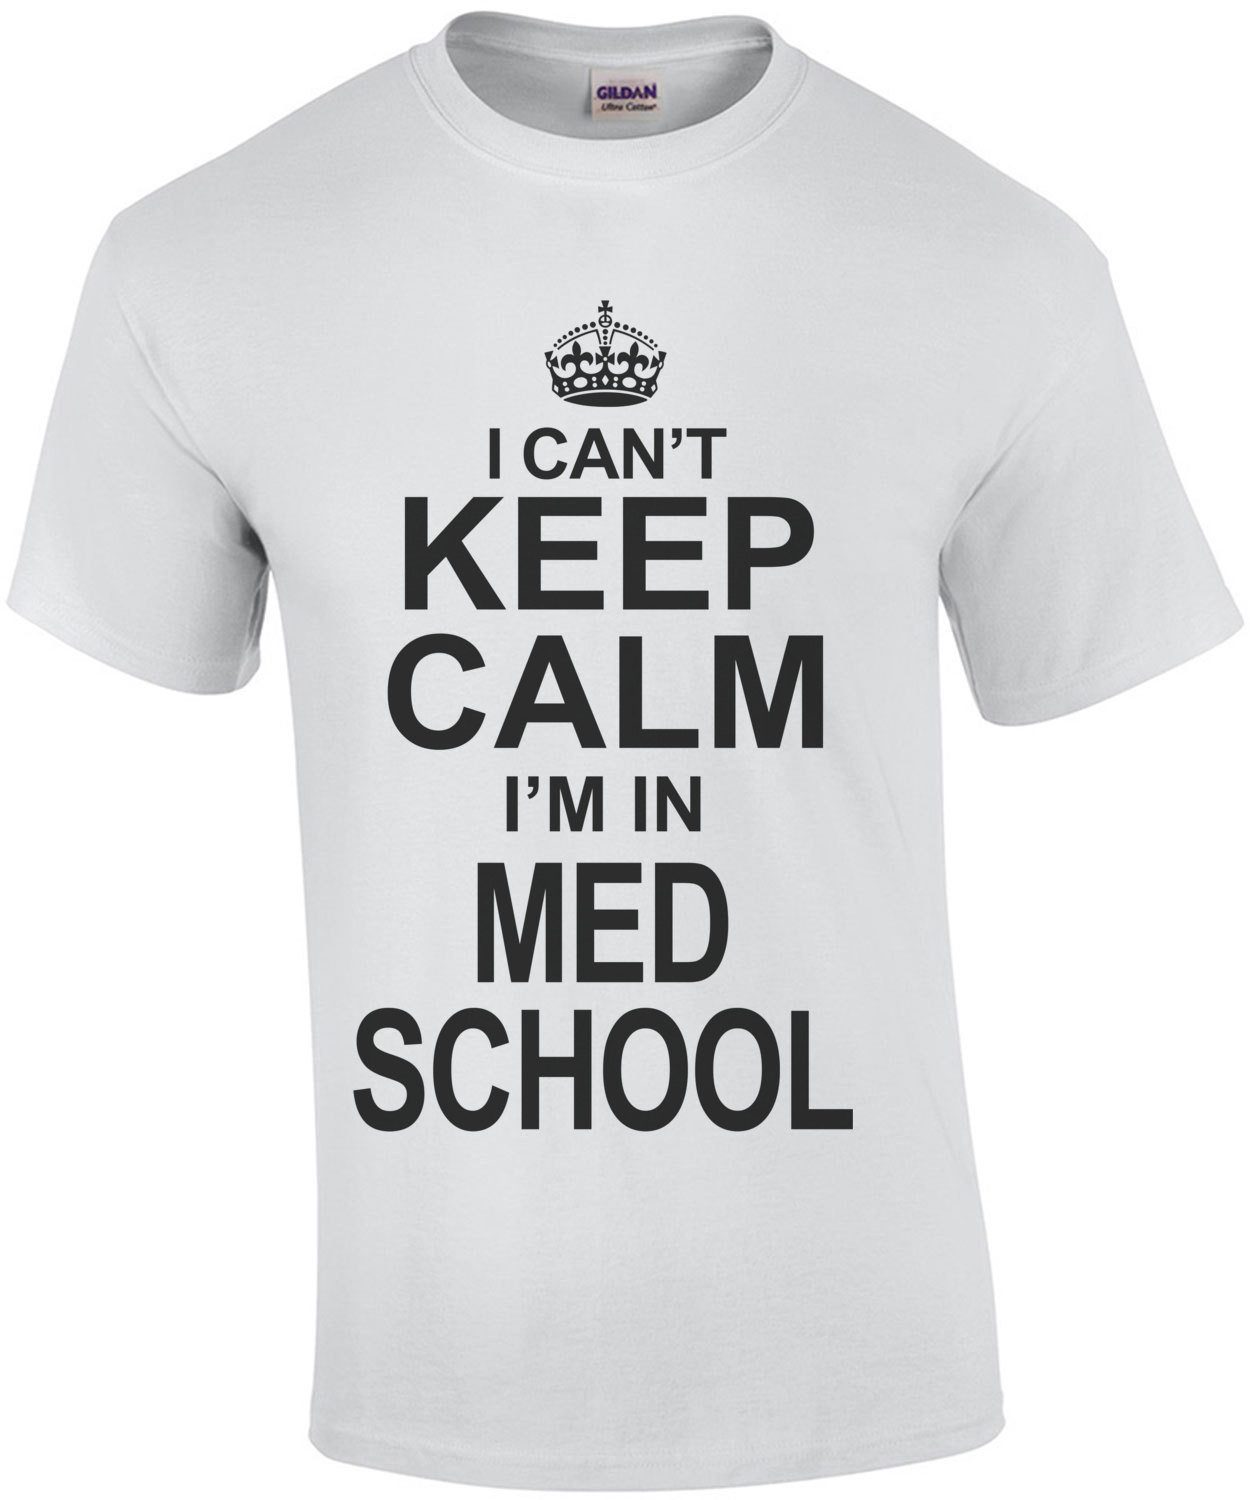 I Cant Keep Calm I'm In Med School T-Shirt